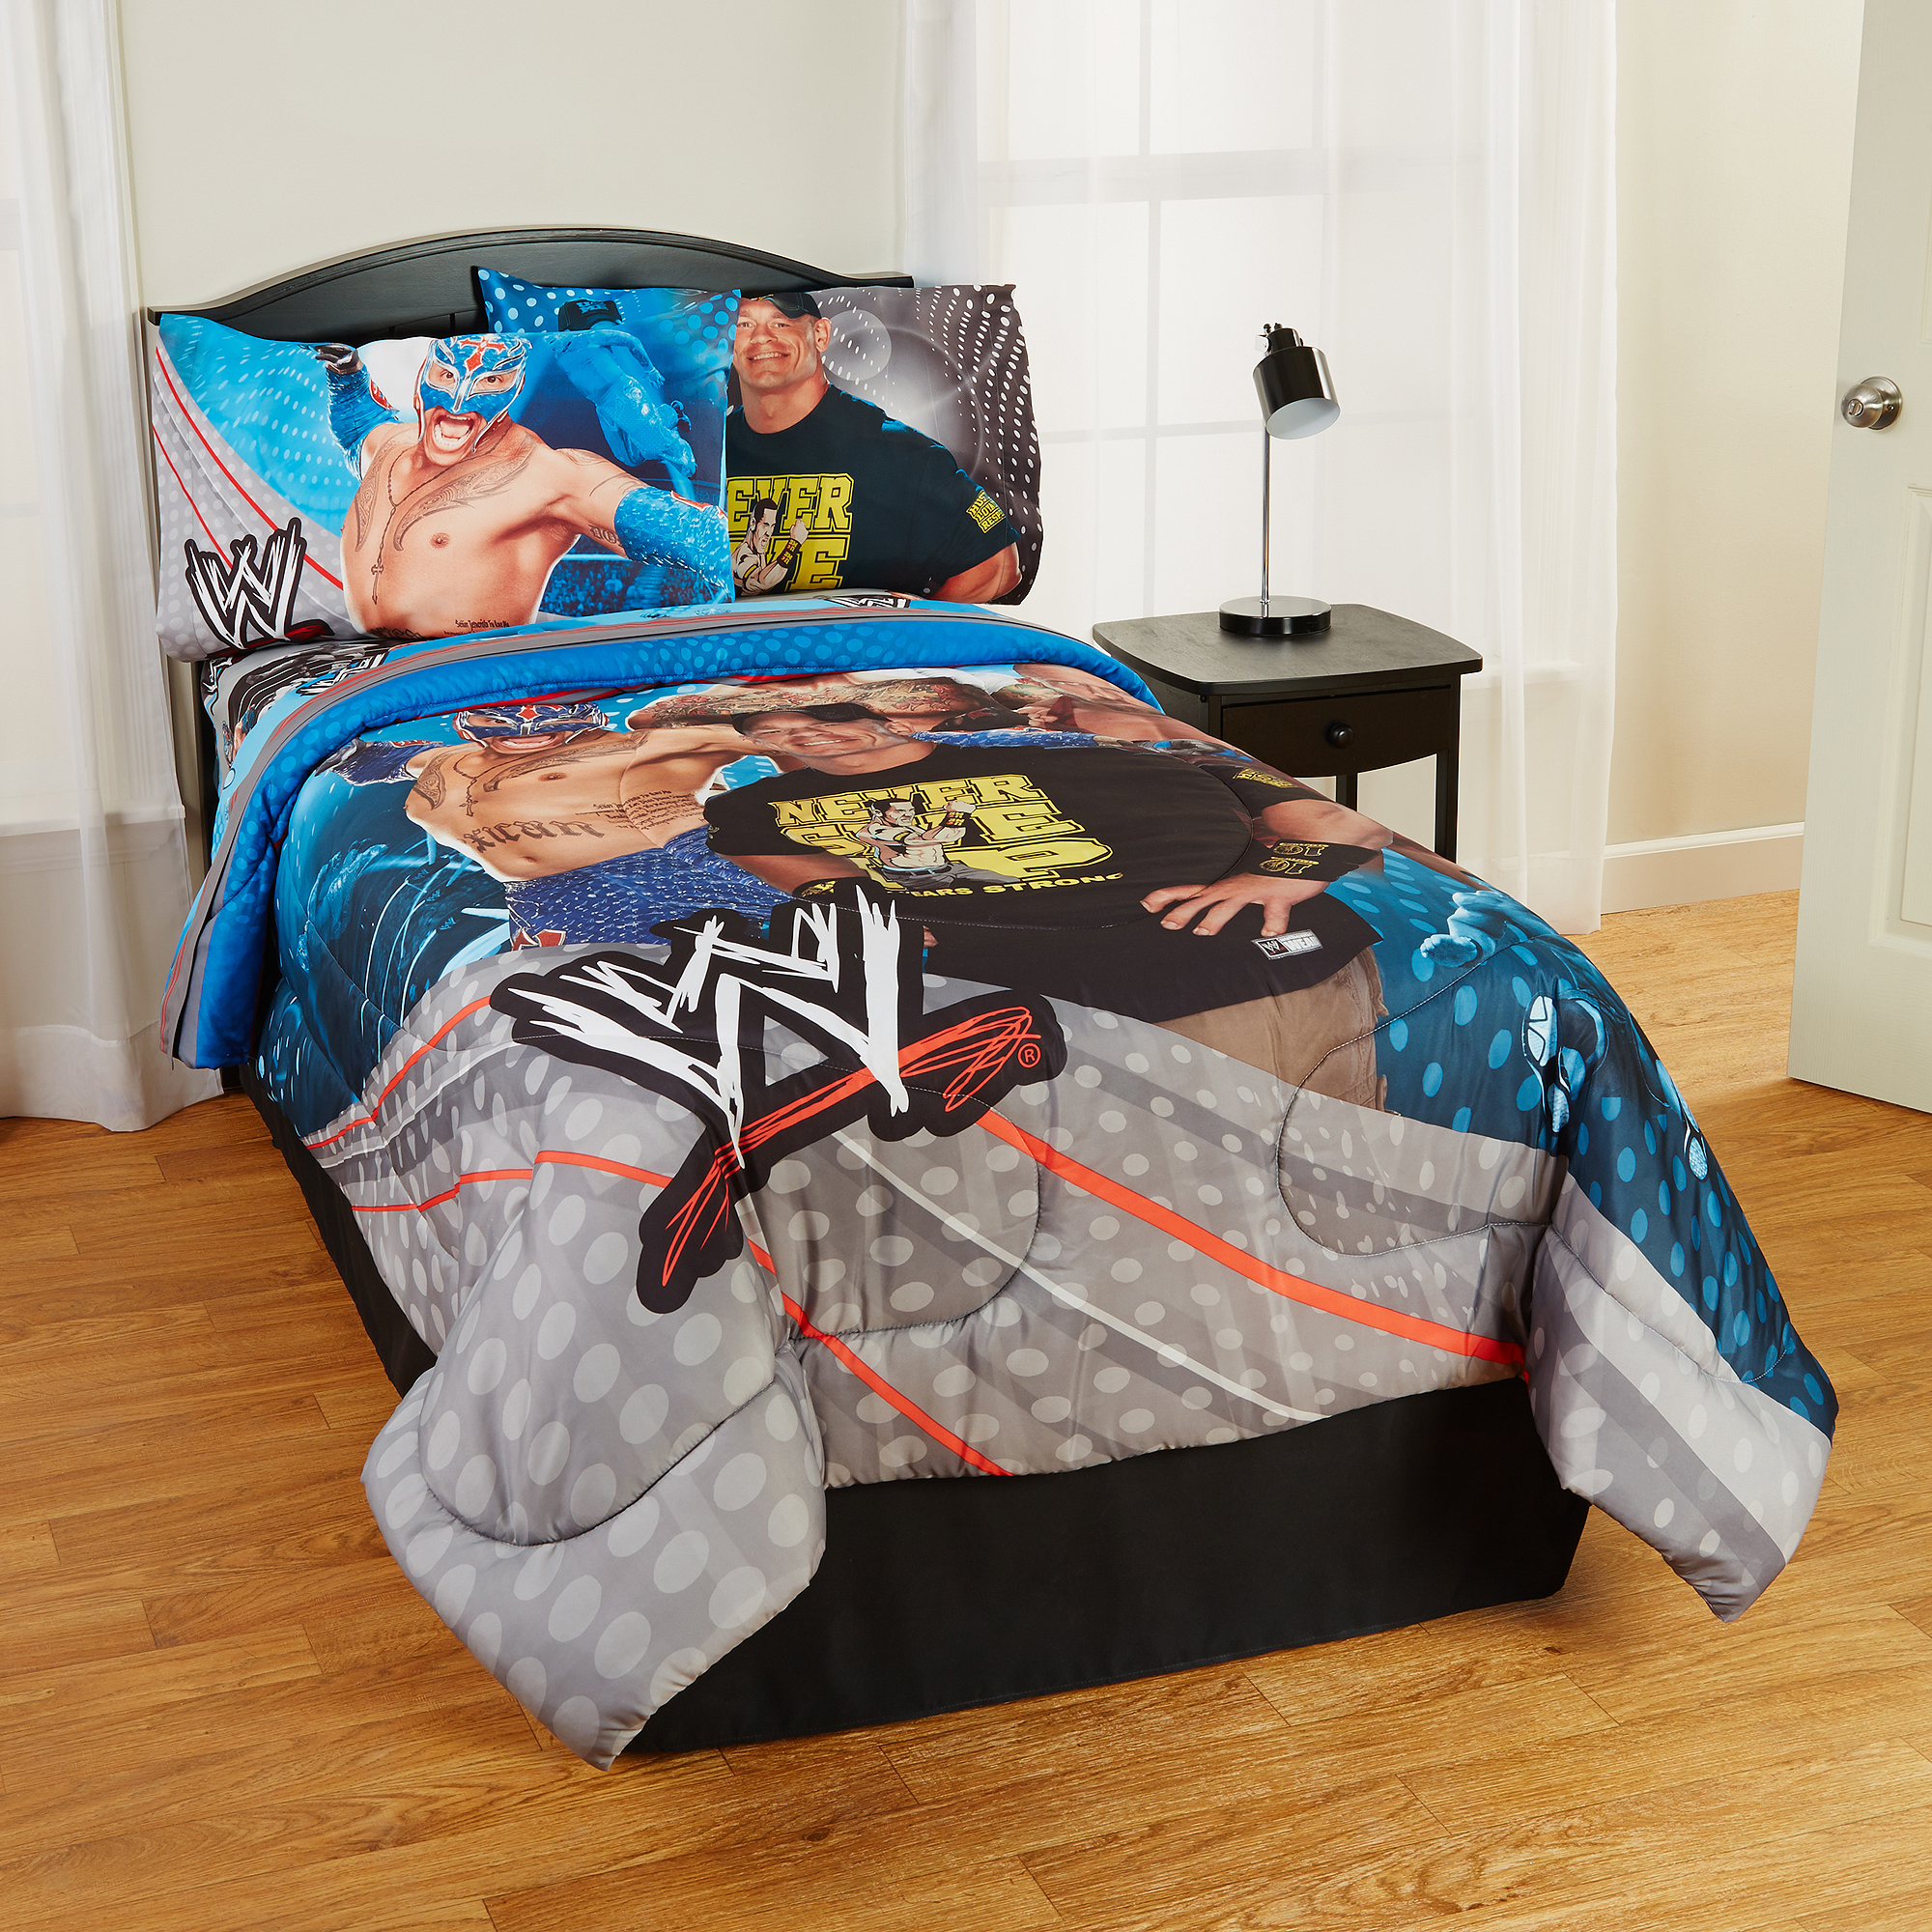 Wwe Queen Size Bedding Solid Graphikworks Co